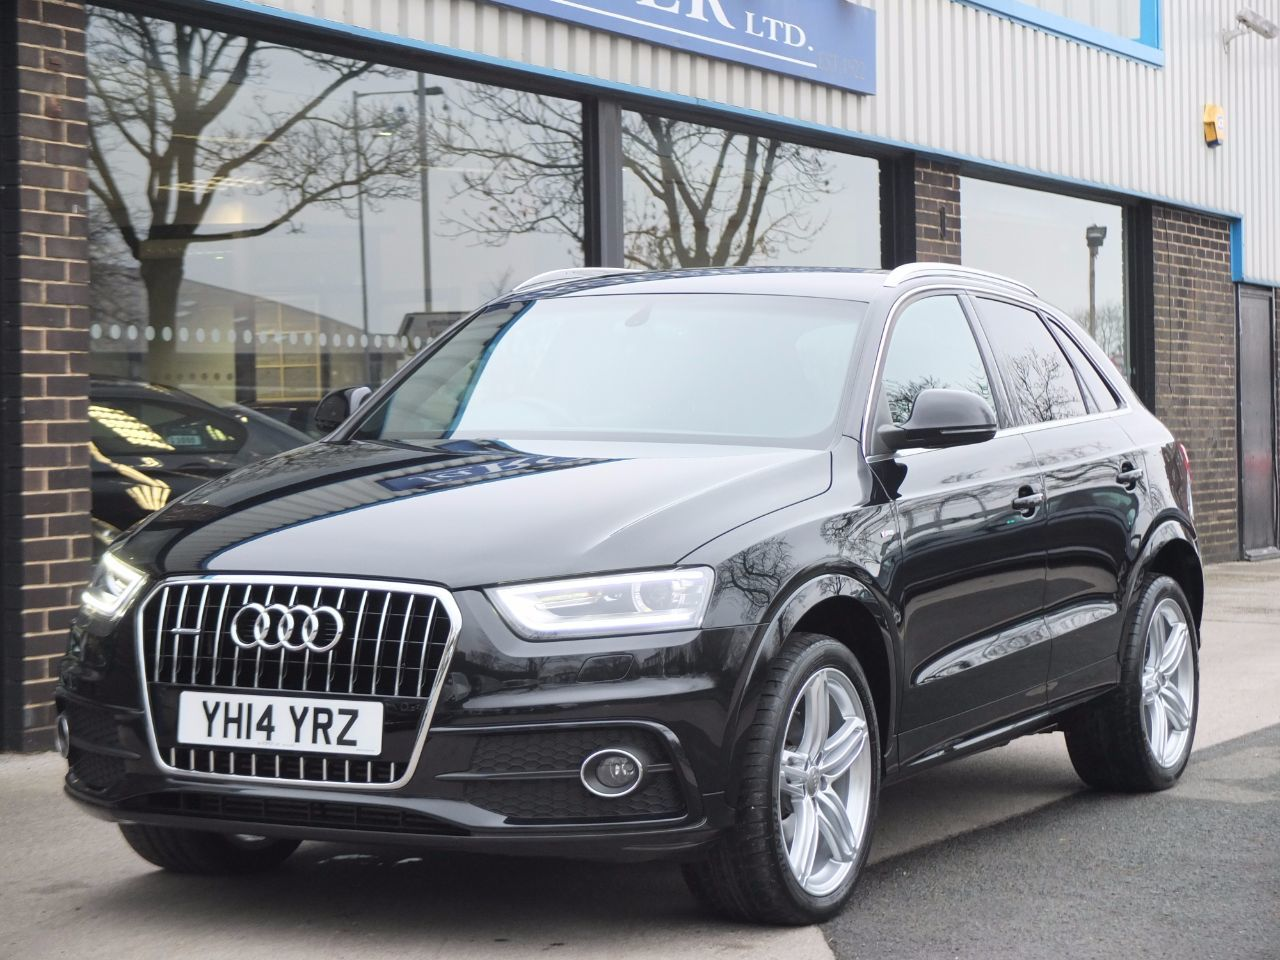 Audi Q3 2.0 TDI quattro S Line Plus S tronic 140ps Estate Diesel Phantom Black MetallicAudi Q3 2.0 TDI quattro S Line Plus S tronic 140ps Estate Diesel Phantom Black Metallic at fa Roper Ltd Bradford